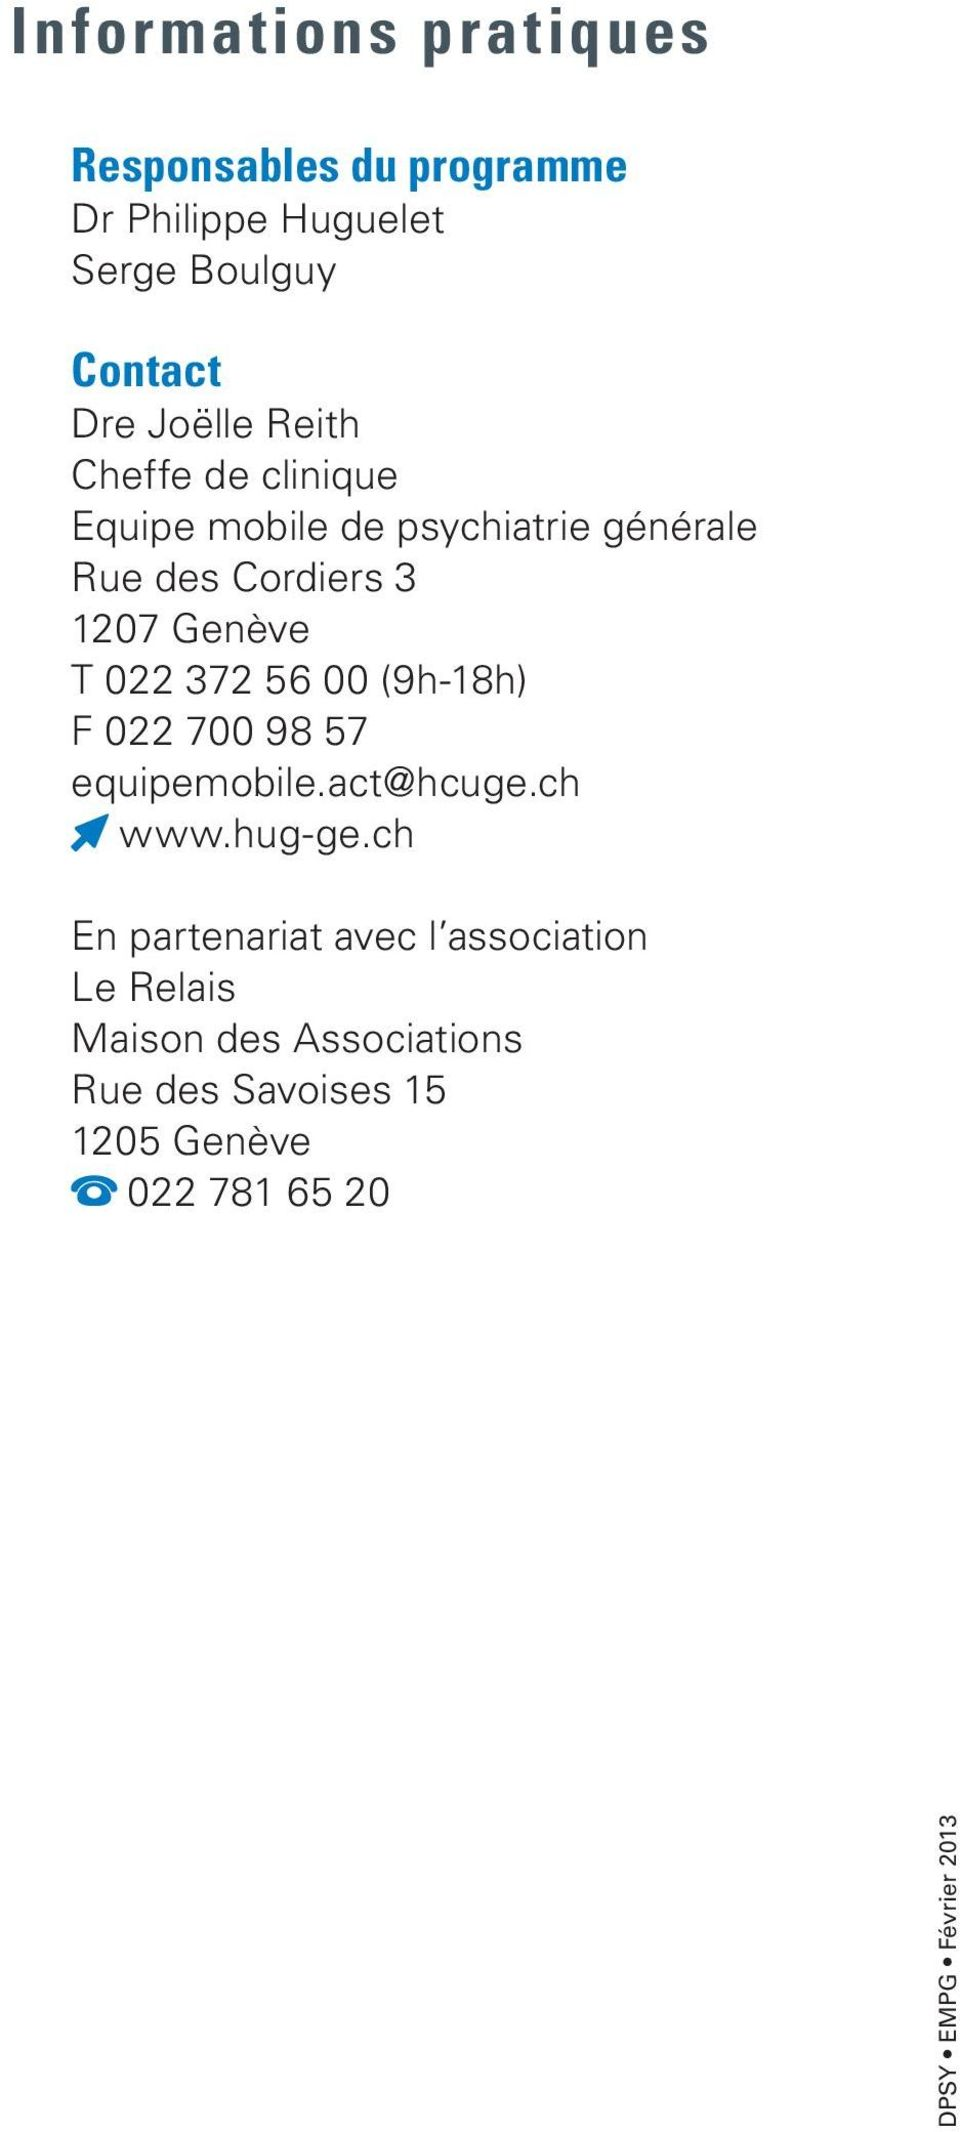 56 00 (9h-18h) F 022 700 98 57 equipemobile.act@hcuge.ch www.hug-ge.